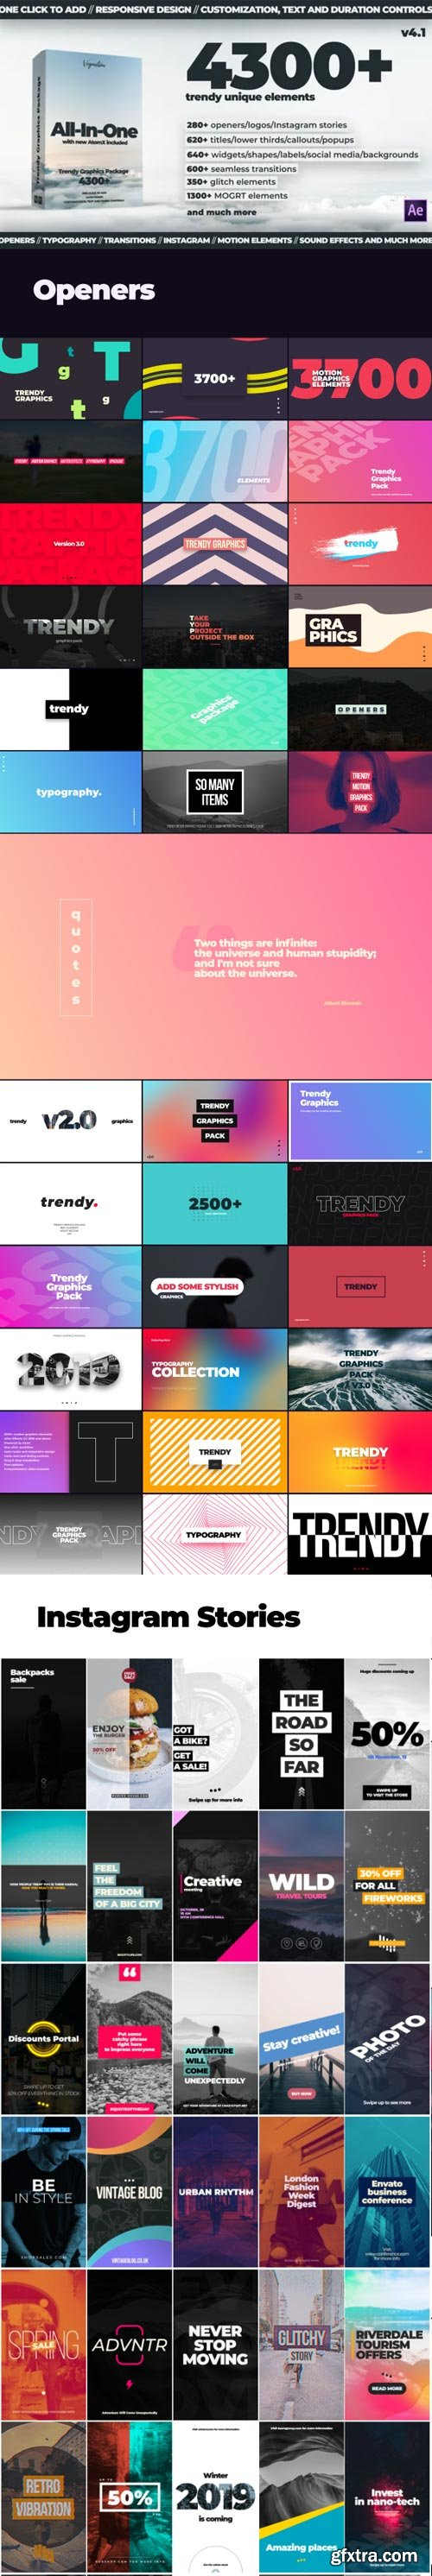 Videohive - Motion Graphics Pack V4.1 - 24321544